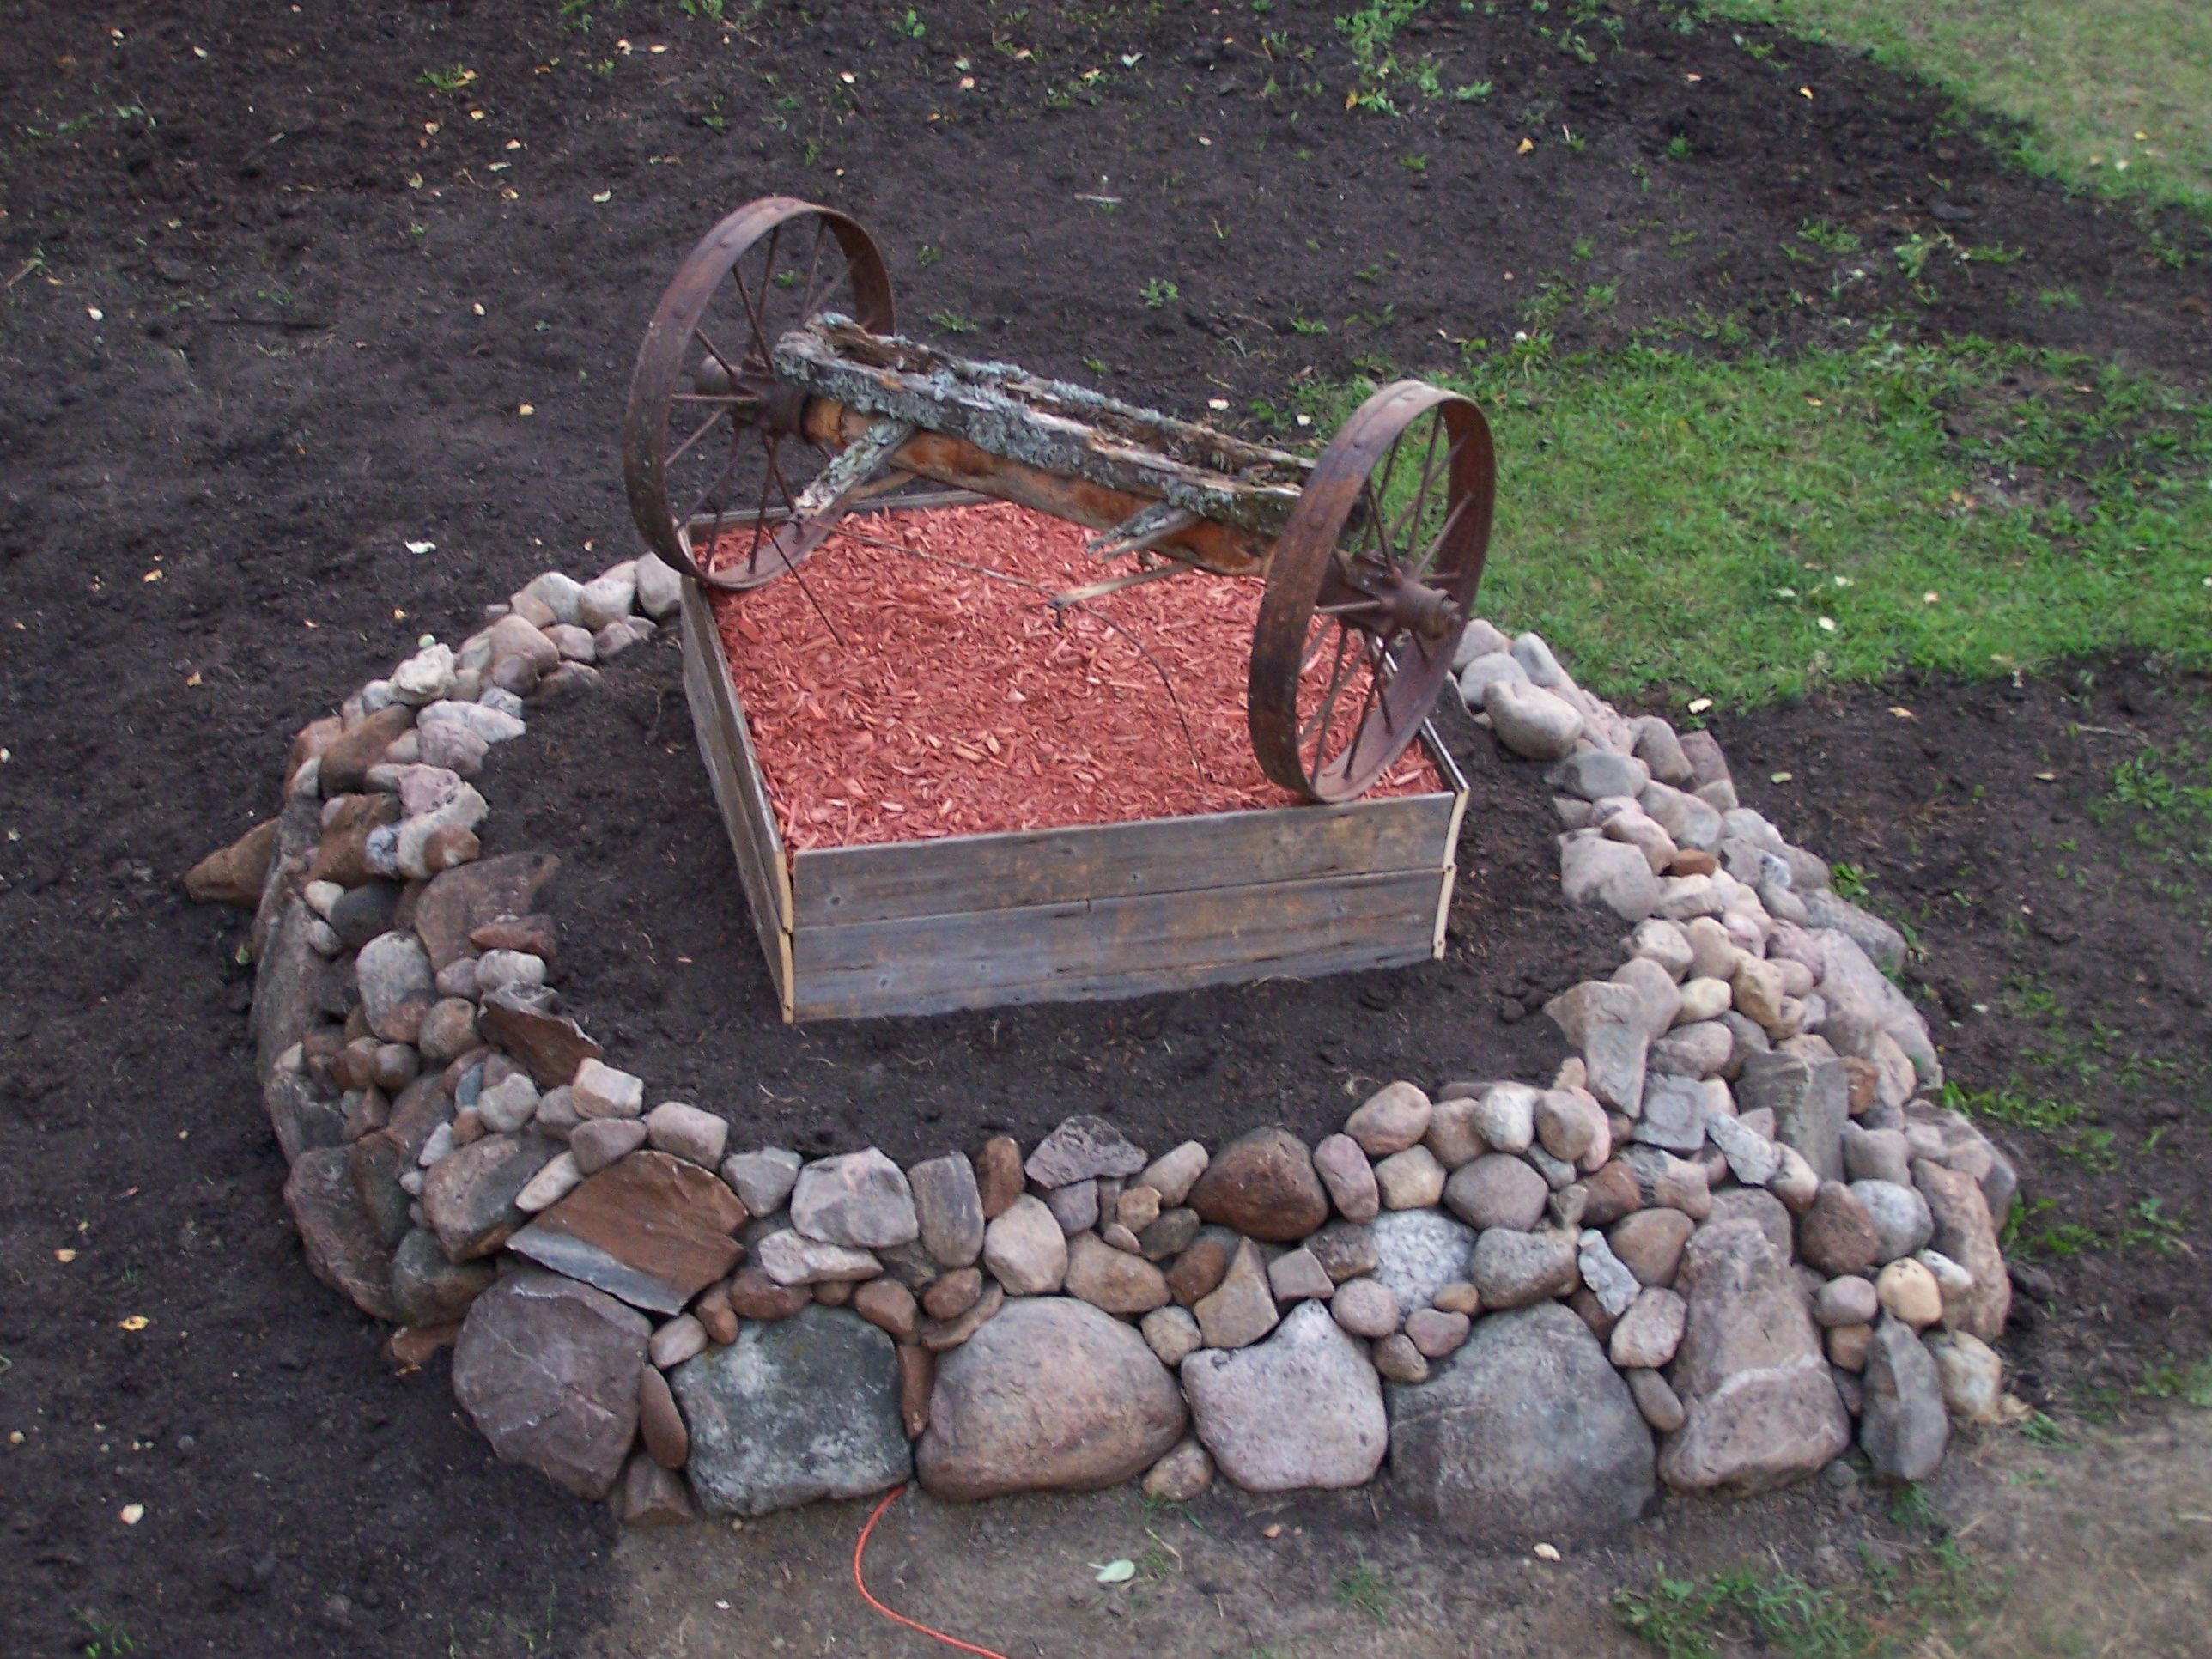 garden ideas old steel wagon wheel axle and rock surrounding flower bed covering up septic tank lid - Garden Ideas To Hide Septic Tank